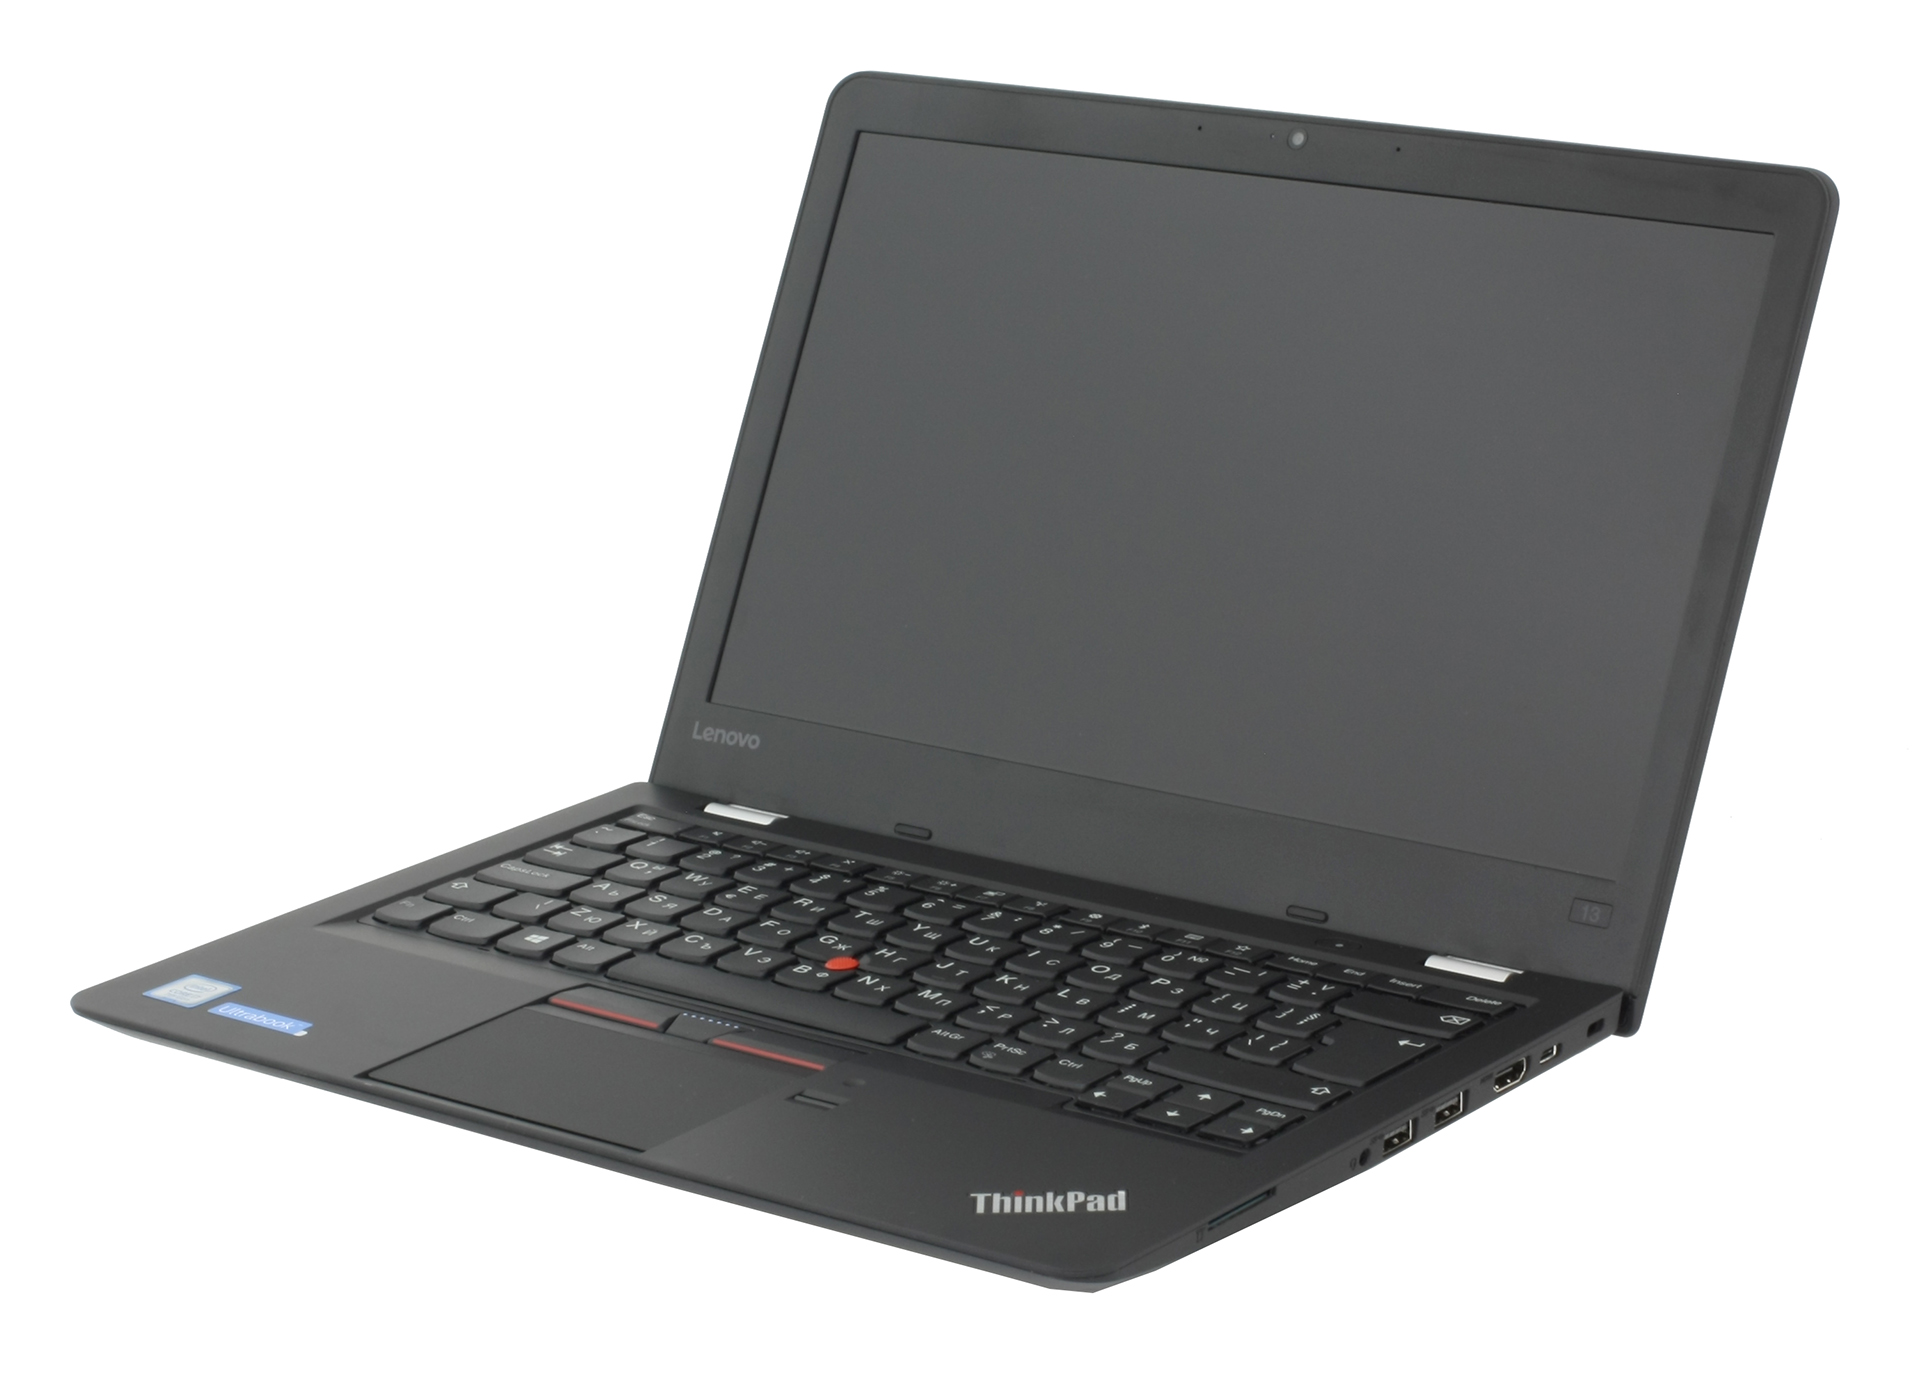 lenovo thinkpad 13 gen 2 review a thinkpad branded 13 inch ultrabook that doesn t feel like one. Black Bedroom Furniture Sets. Home Design Ideas